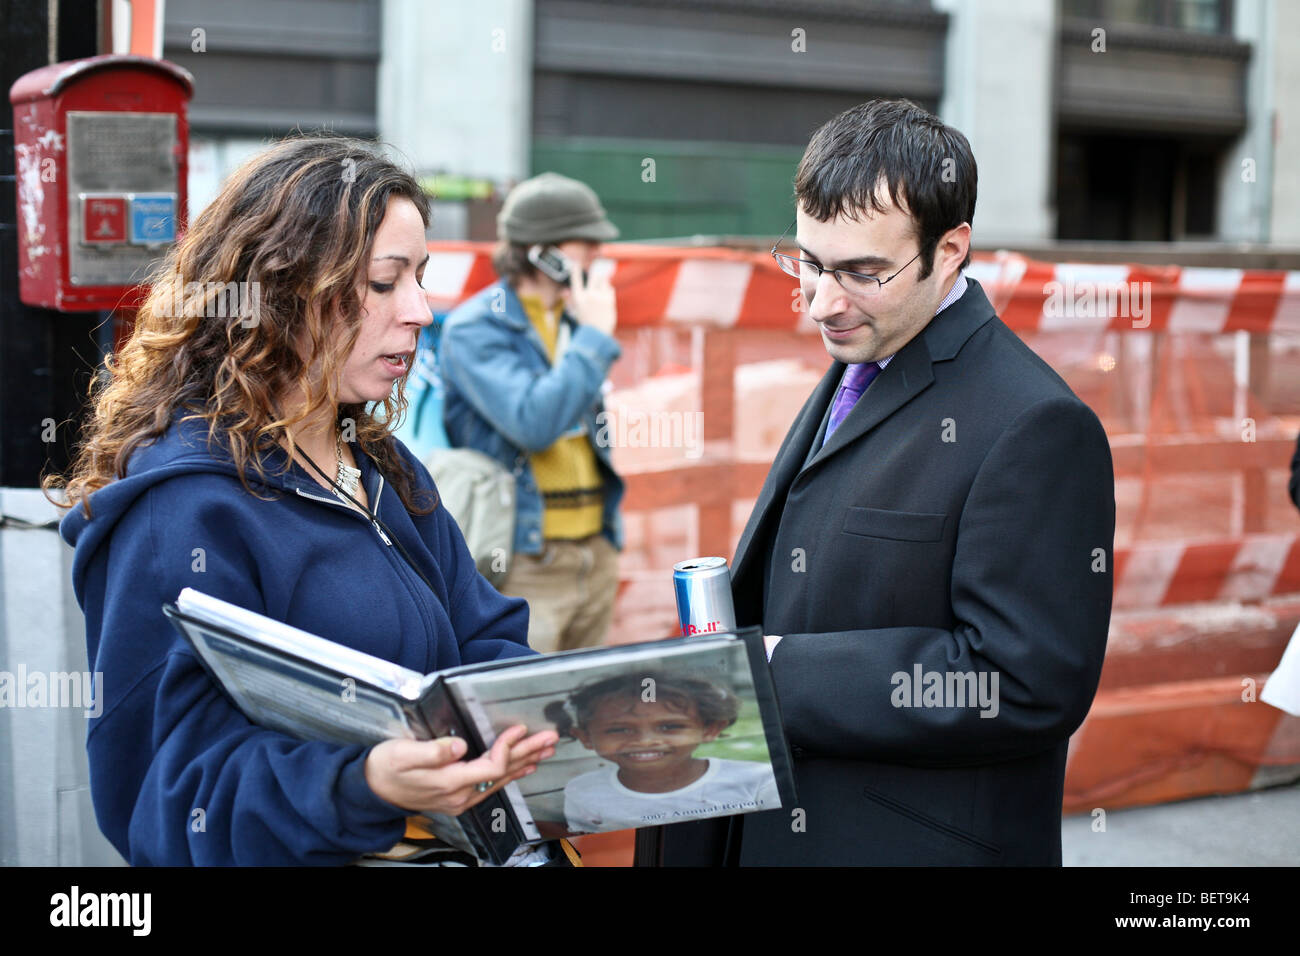 earnest young woman with curly hair pitches a charitable cause to a patient young businessman on Broadway in Lower - Stock Image